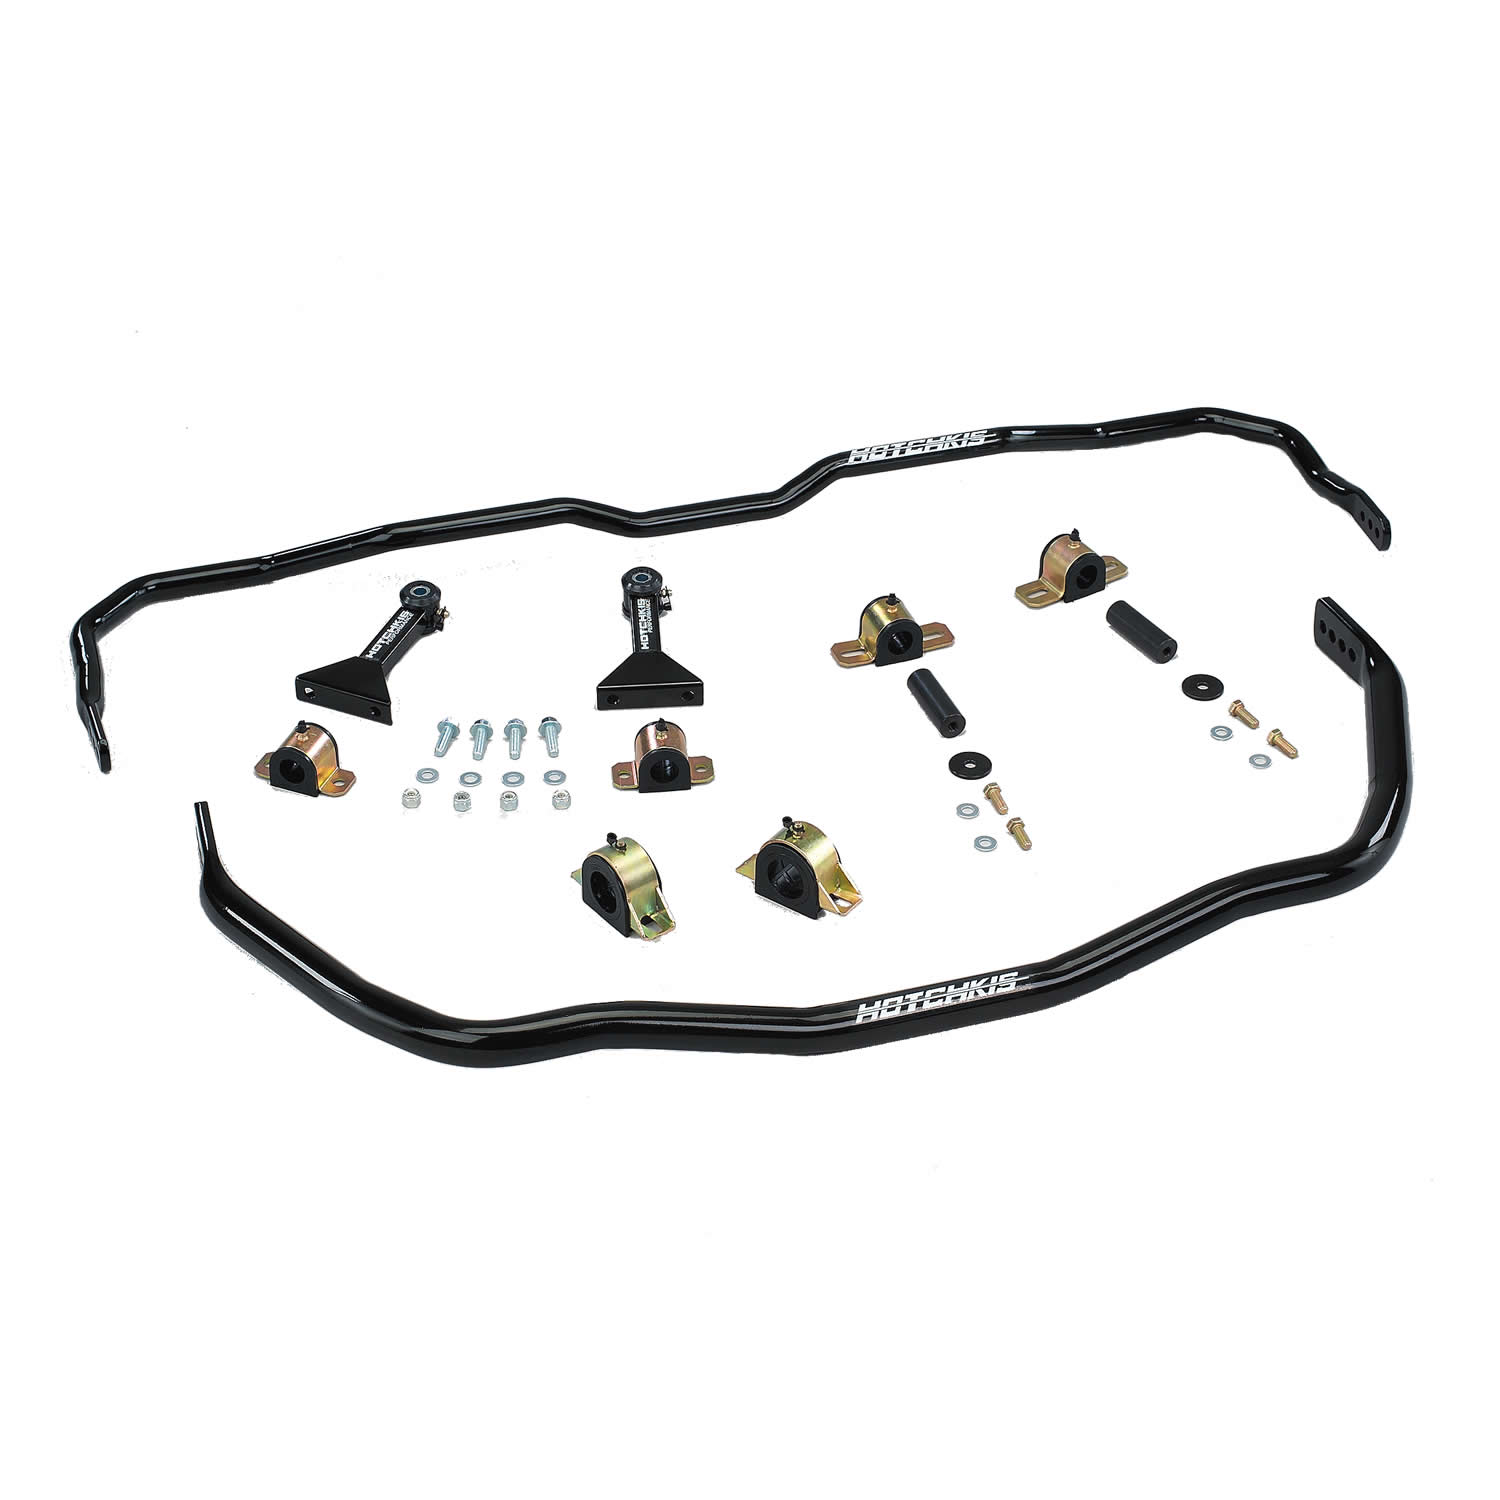 Hotchkis Sport Sway Bar Set One Pair For 05 17 Ford